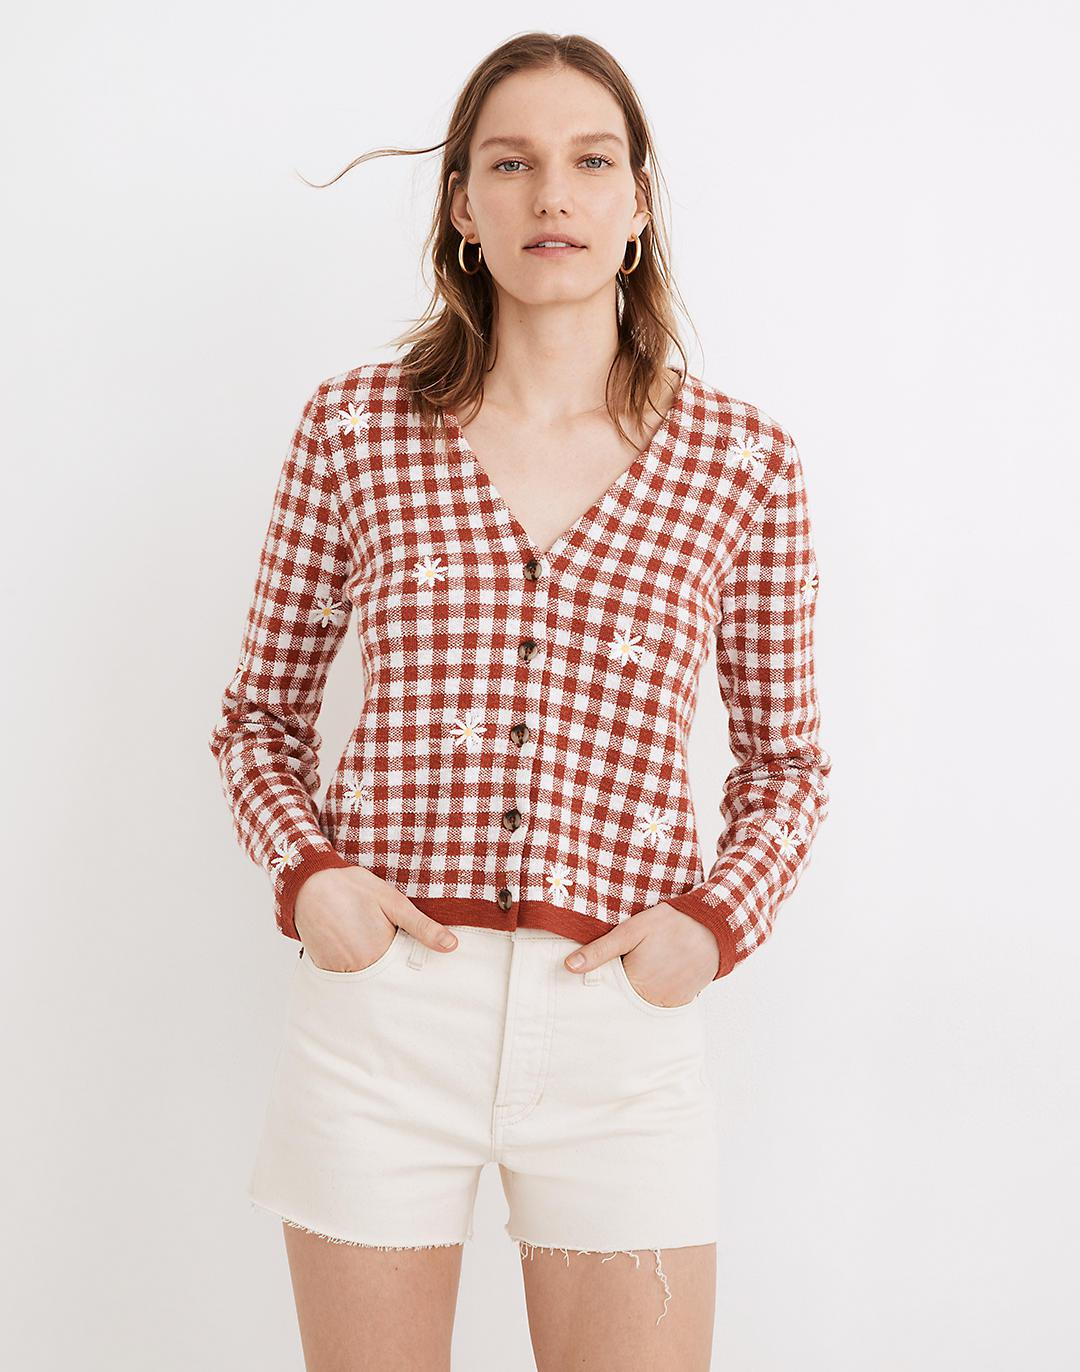 Daisy Embroidered Gingham Cardigan Sweater